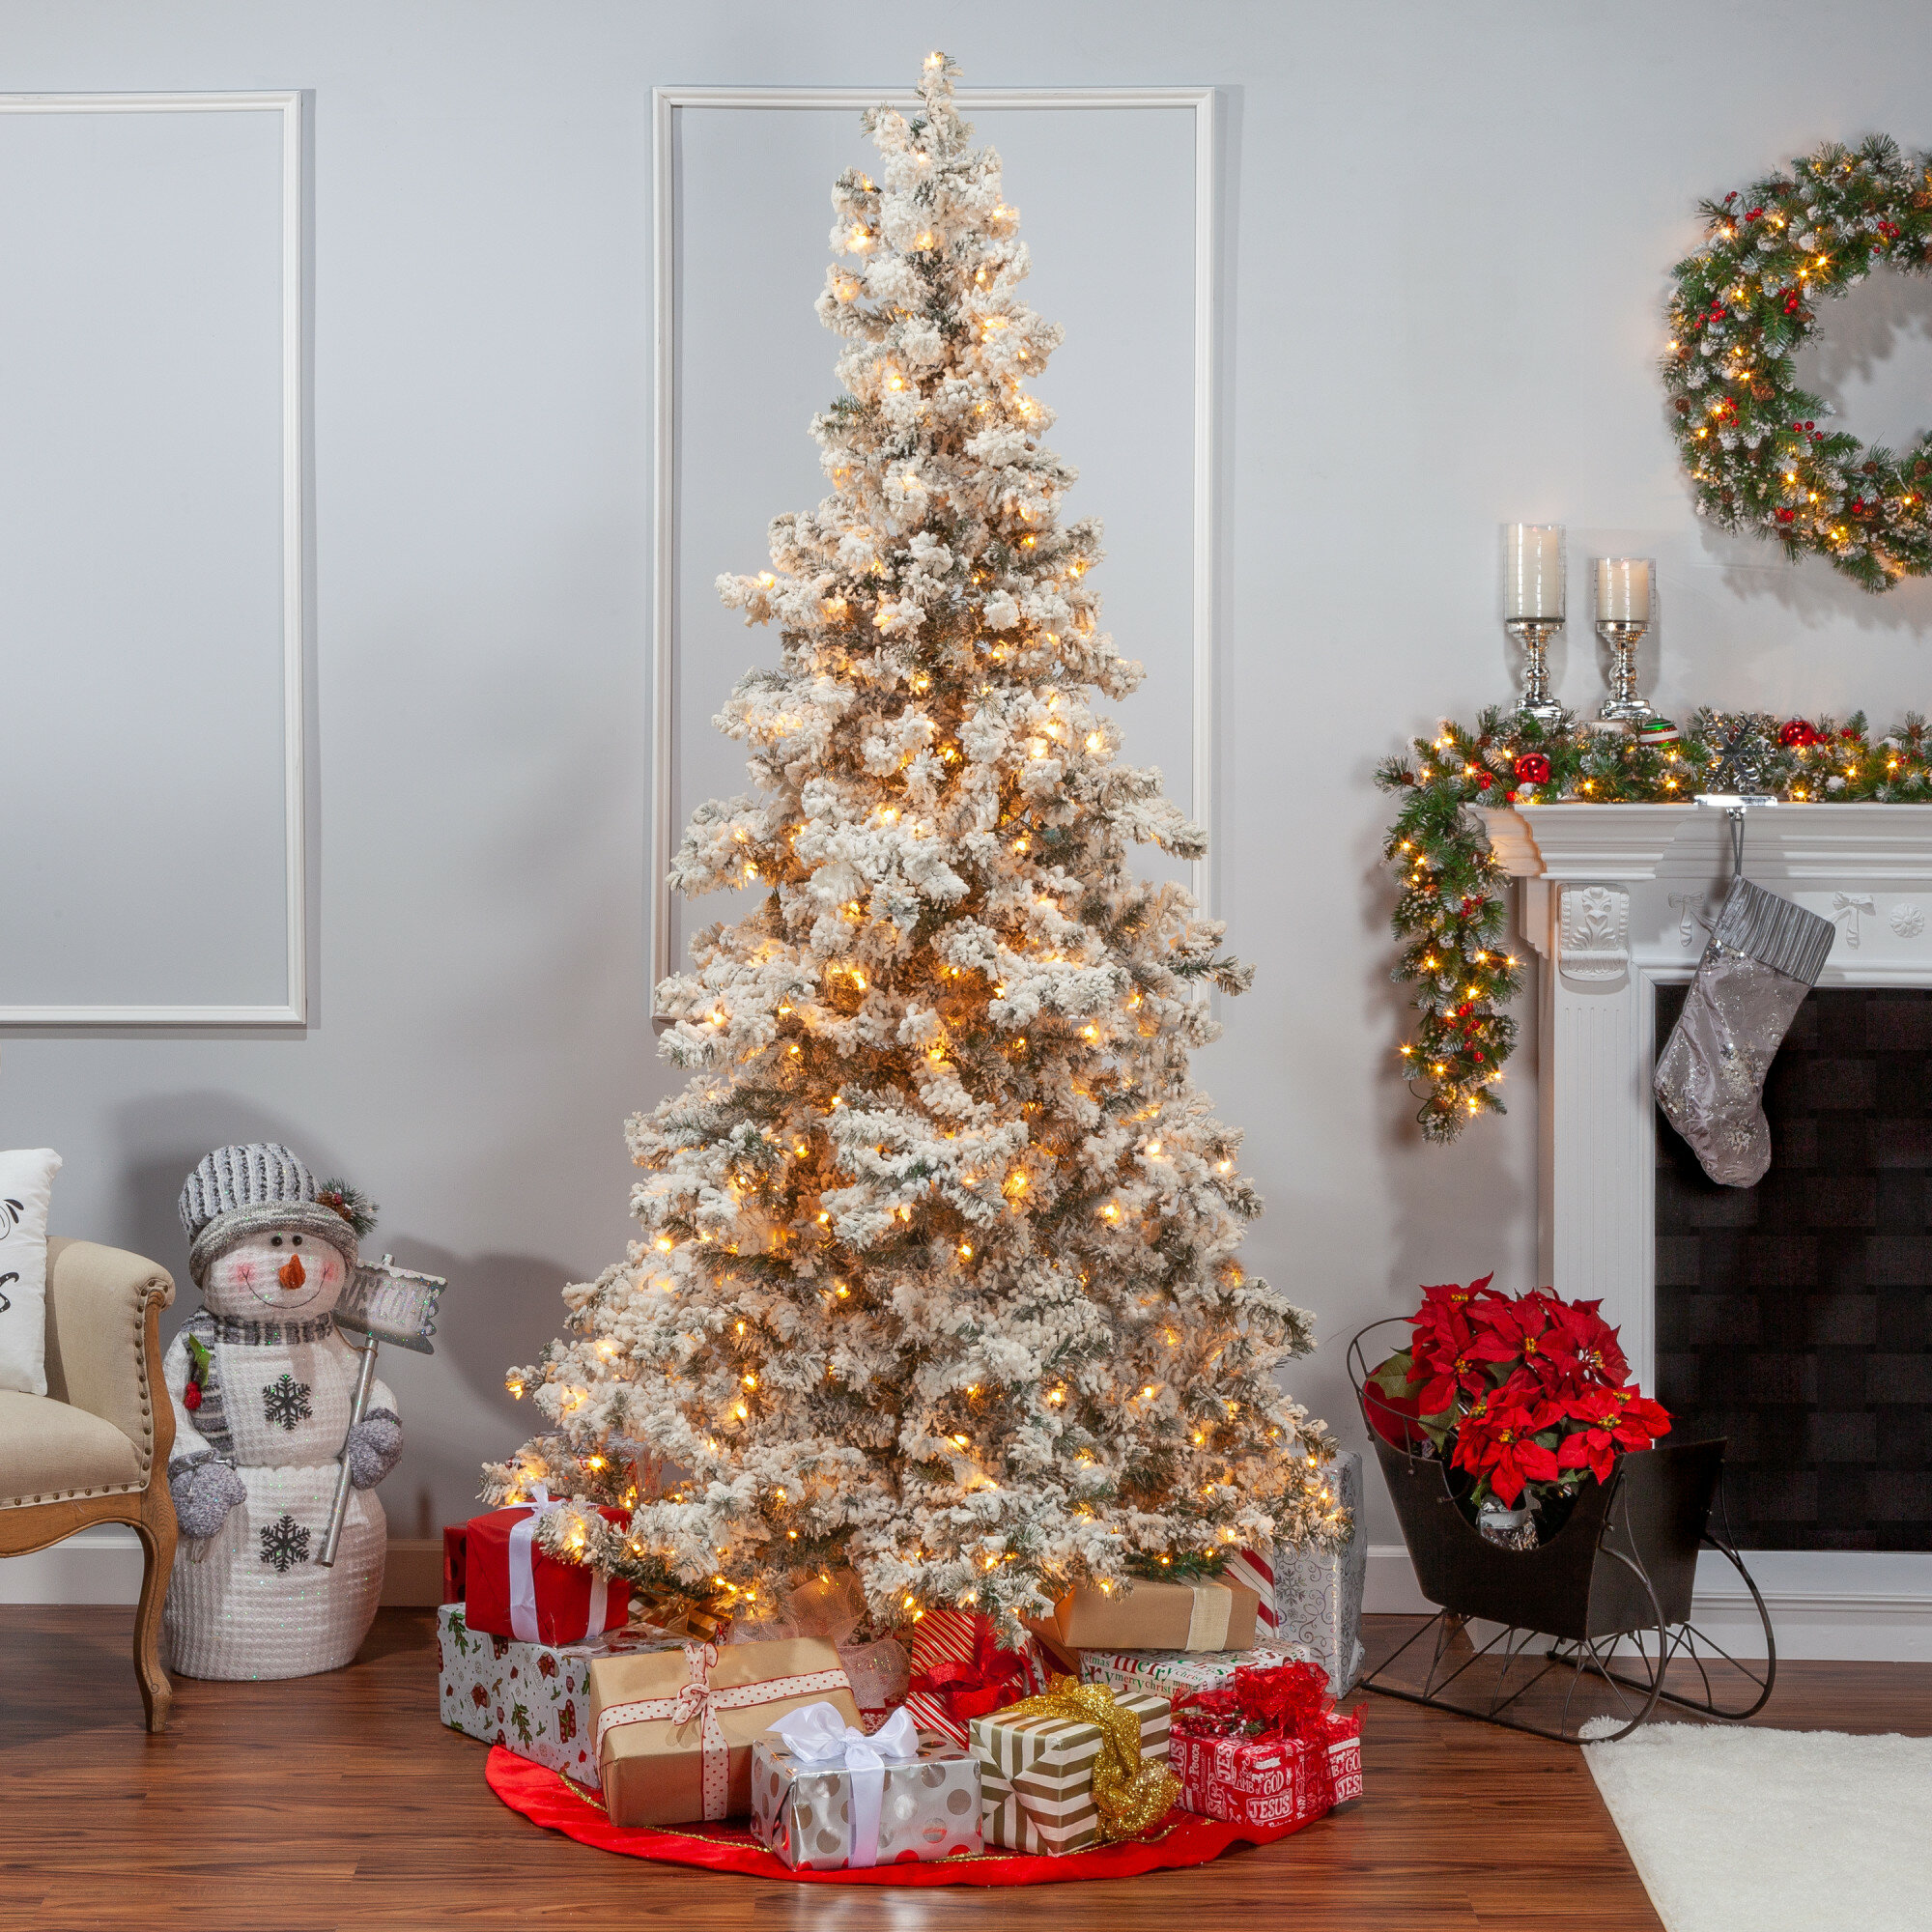 Artificial Christmas Tree With Lights.Heavy Flocked Layered 7 5 White Spruce Artificial Christmas Tree With 550 Clear Lights With Stand